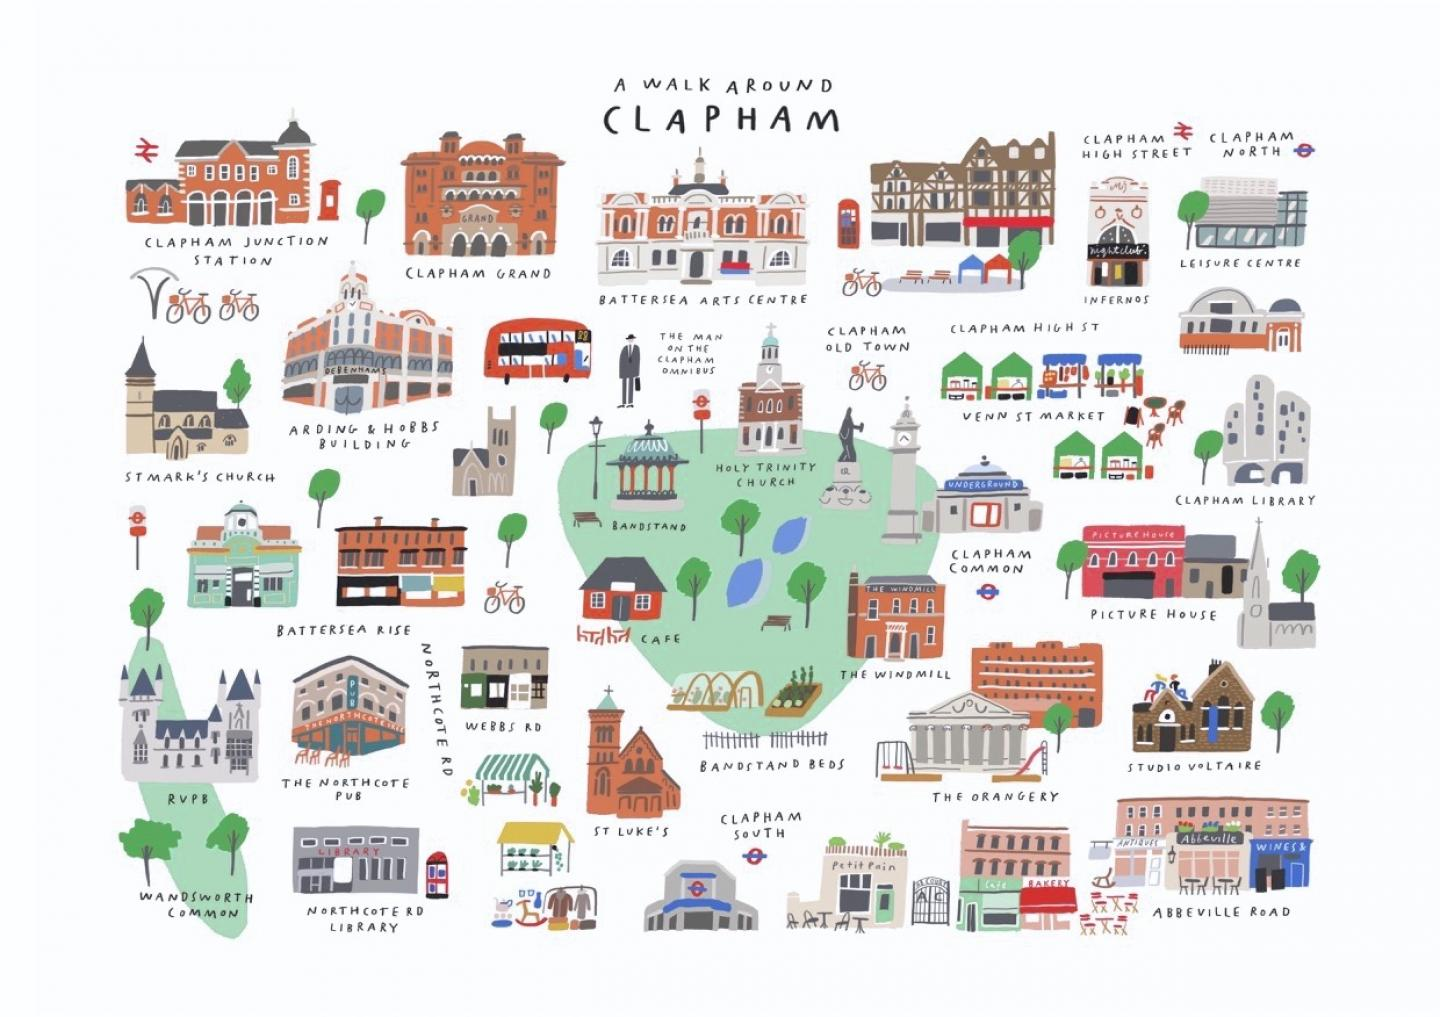 Place in Print Mercedes Leon Walk Around Clapham Art Map